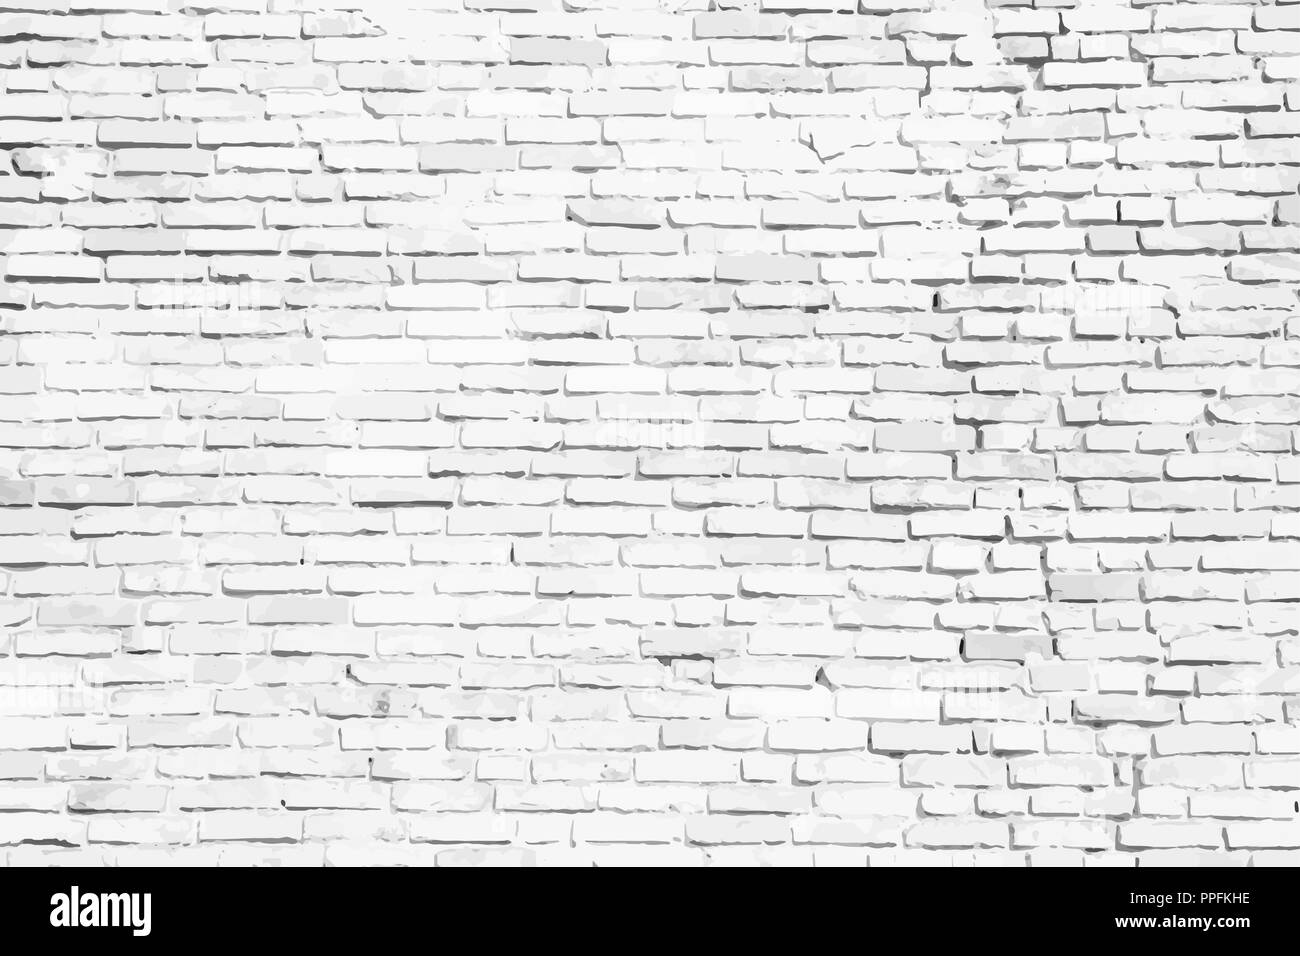 Simple White And Grey Brick Wall As Seamless Surface Pattern Texture Background Vector Illustration